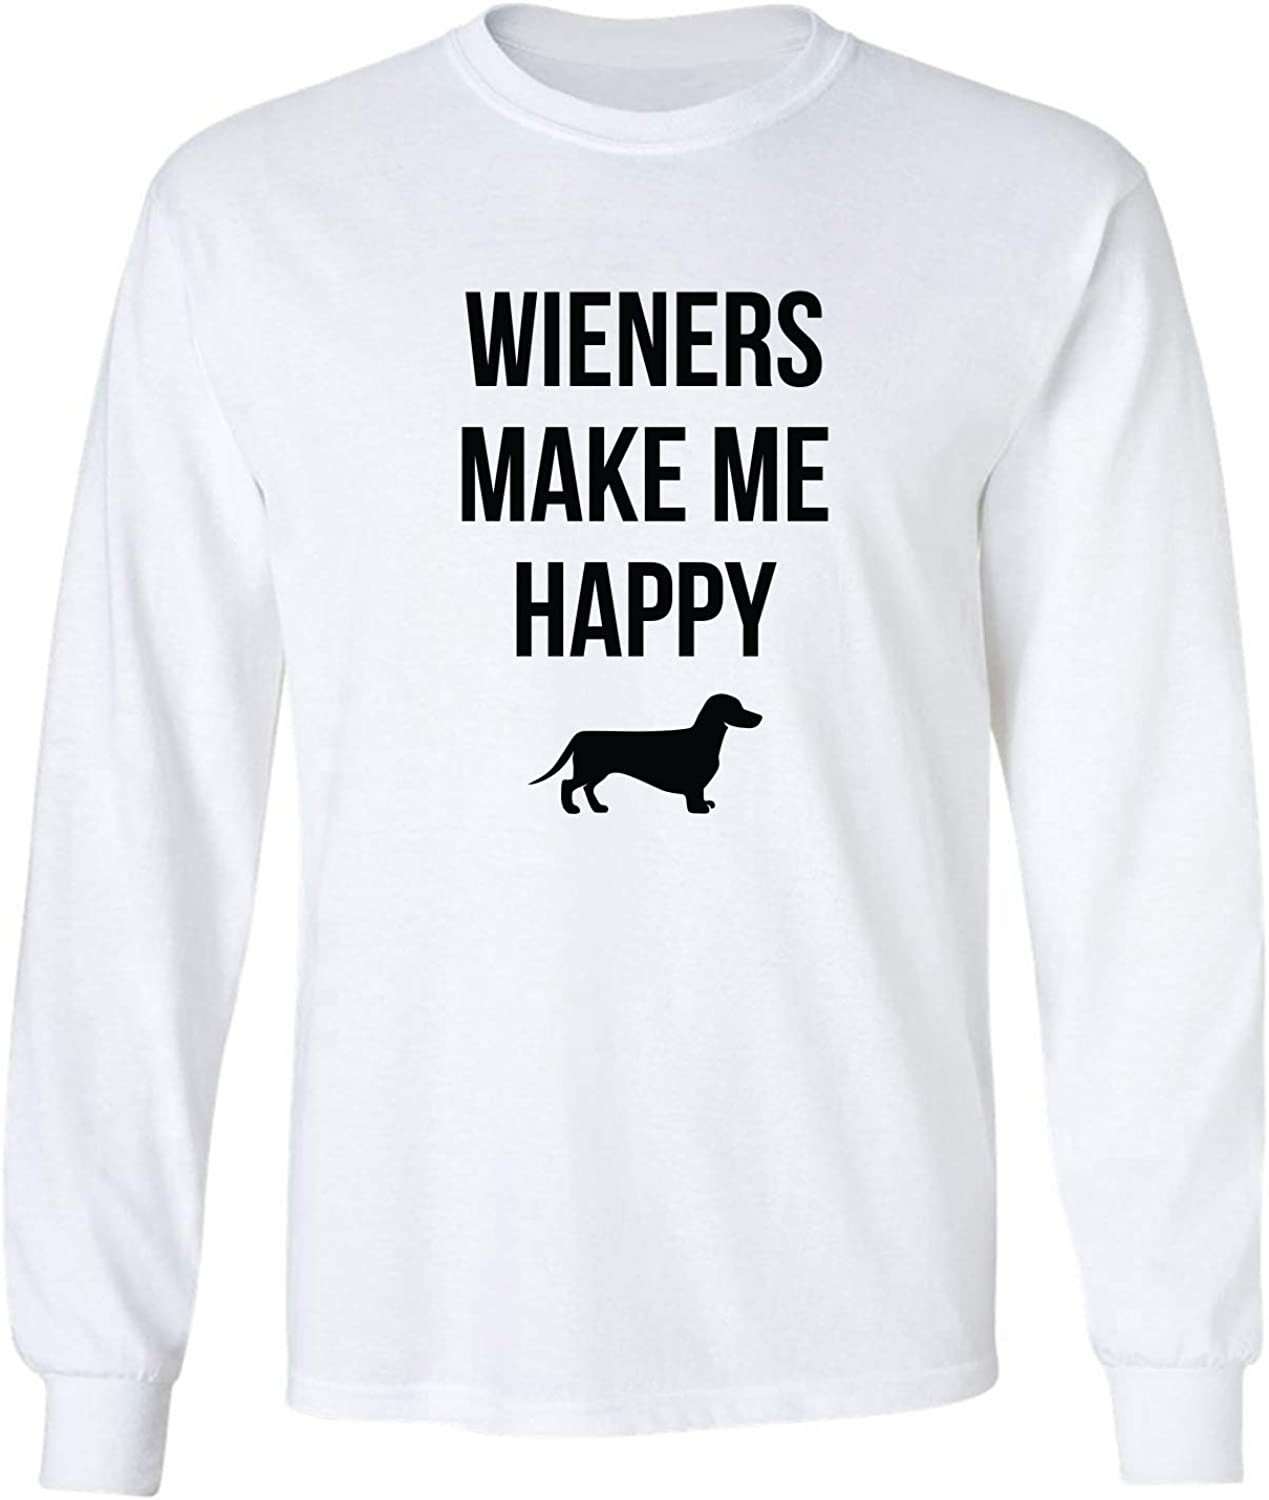 Wieners Make Me Happy Adult Long Sleeve T-Shirt in White - XXX-Large